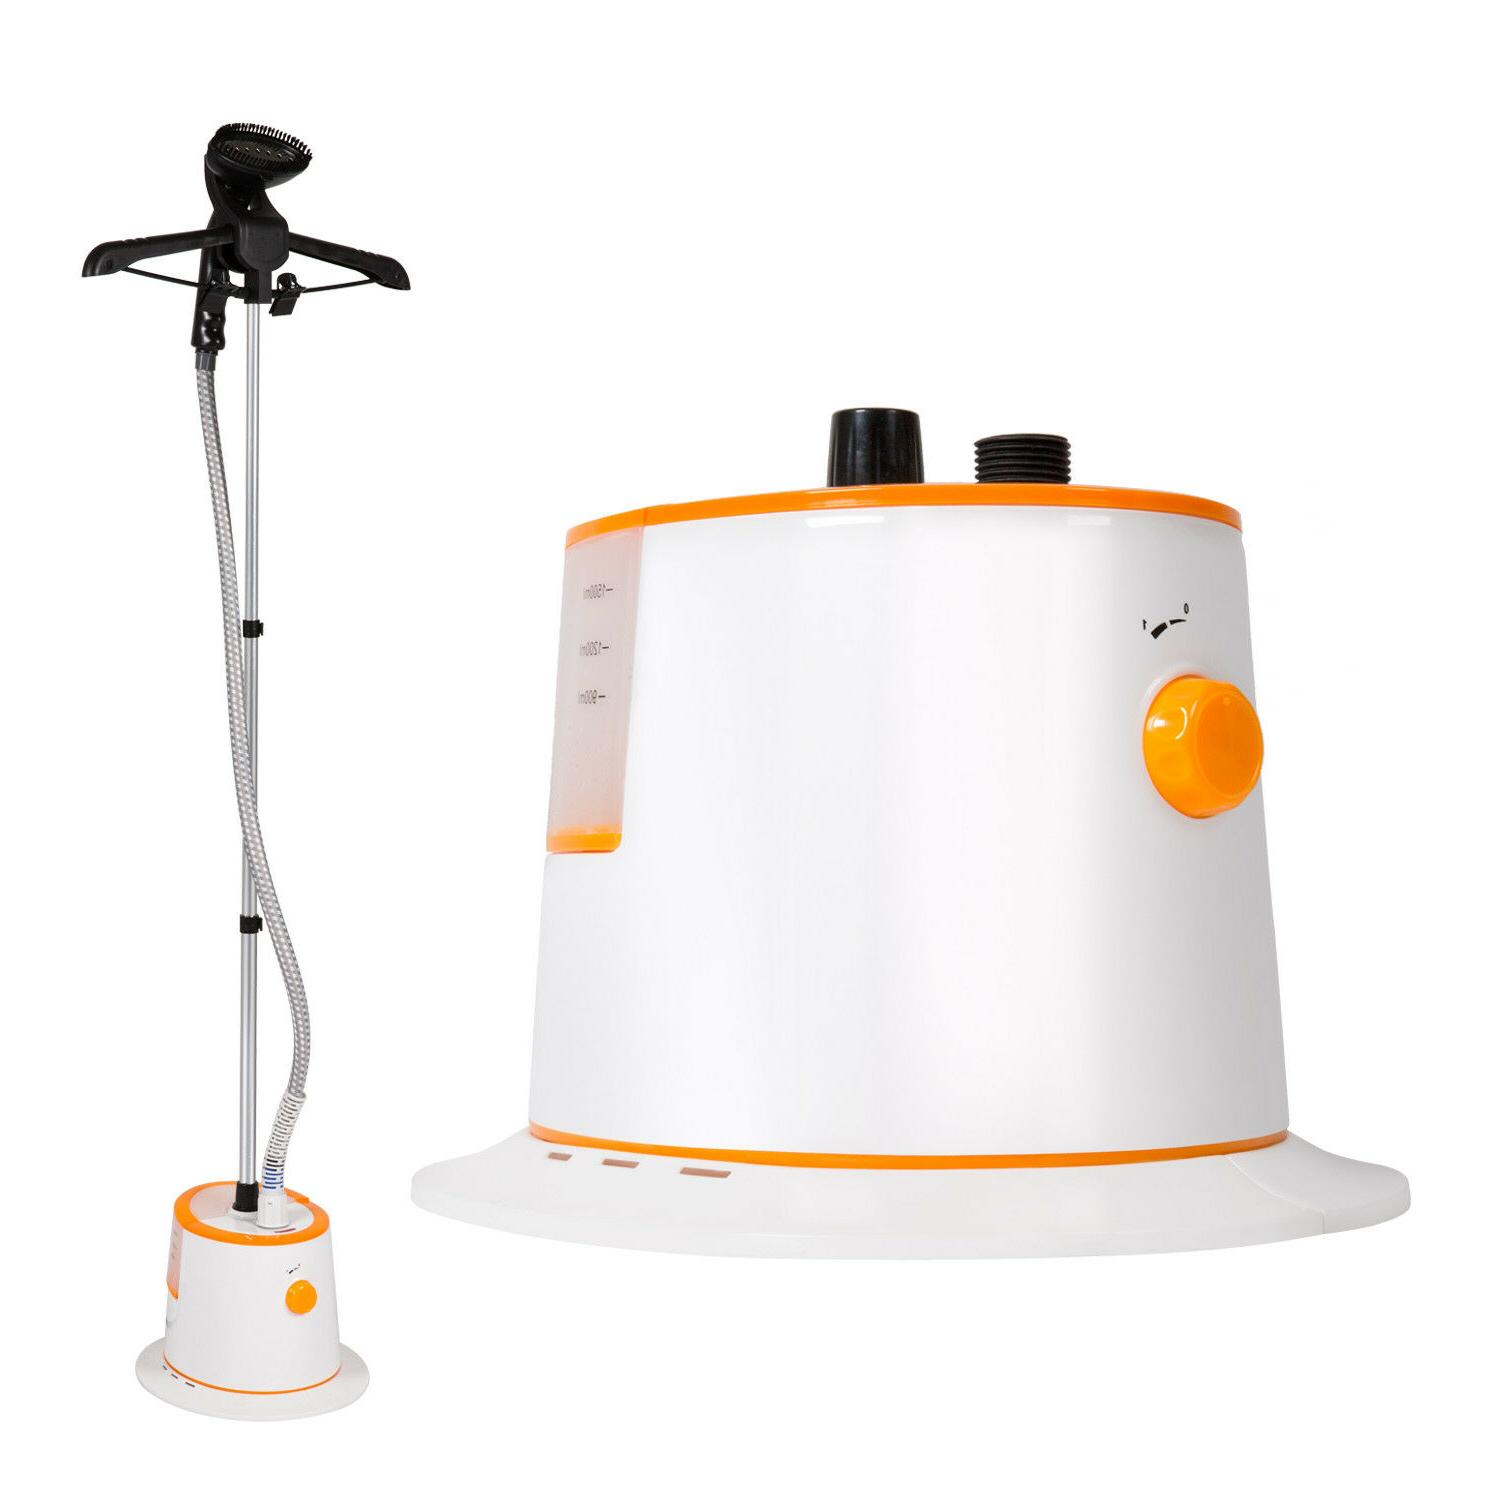 Home Iron Fabric Steam Laundry Steamer